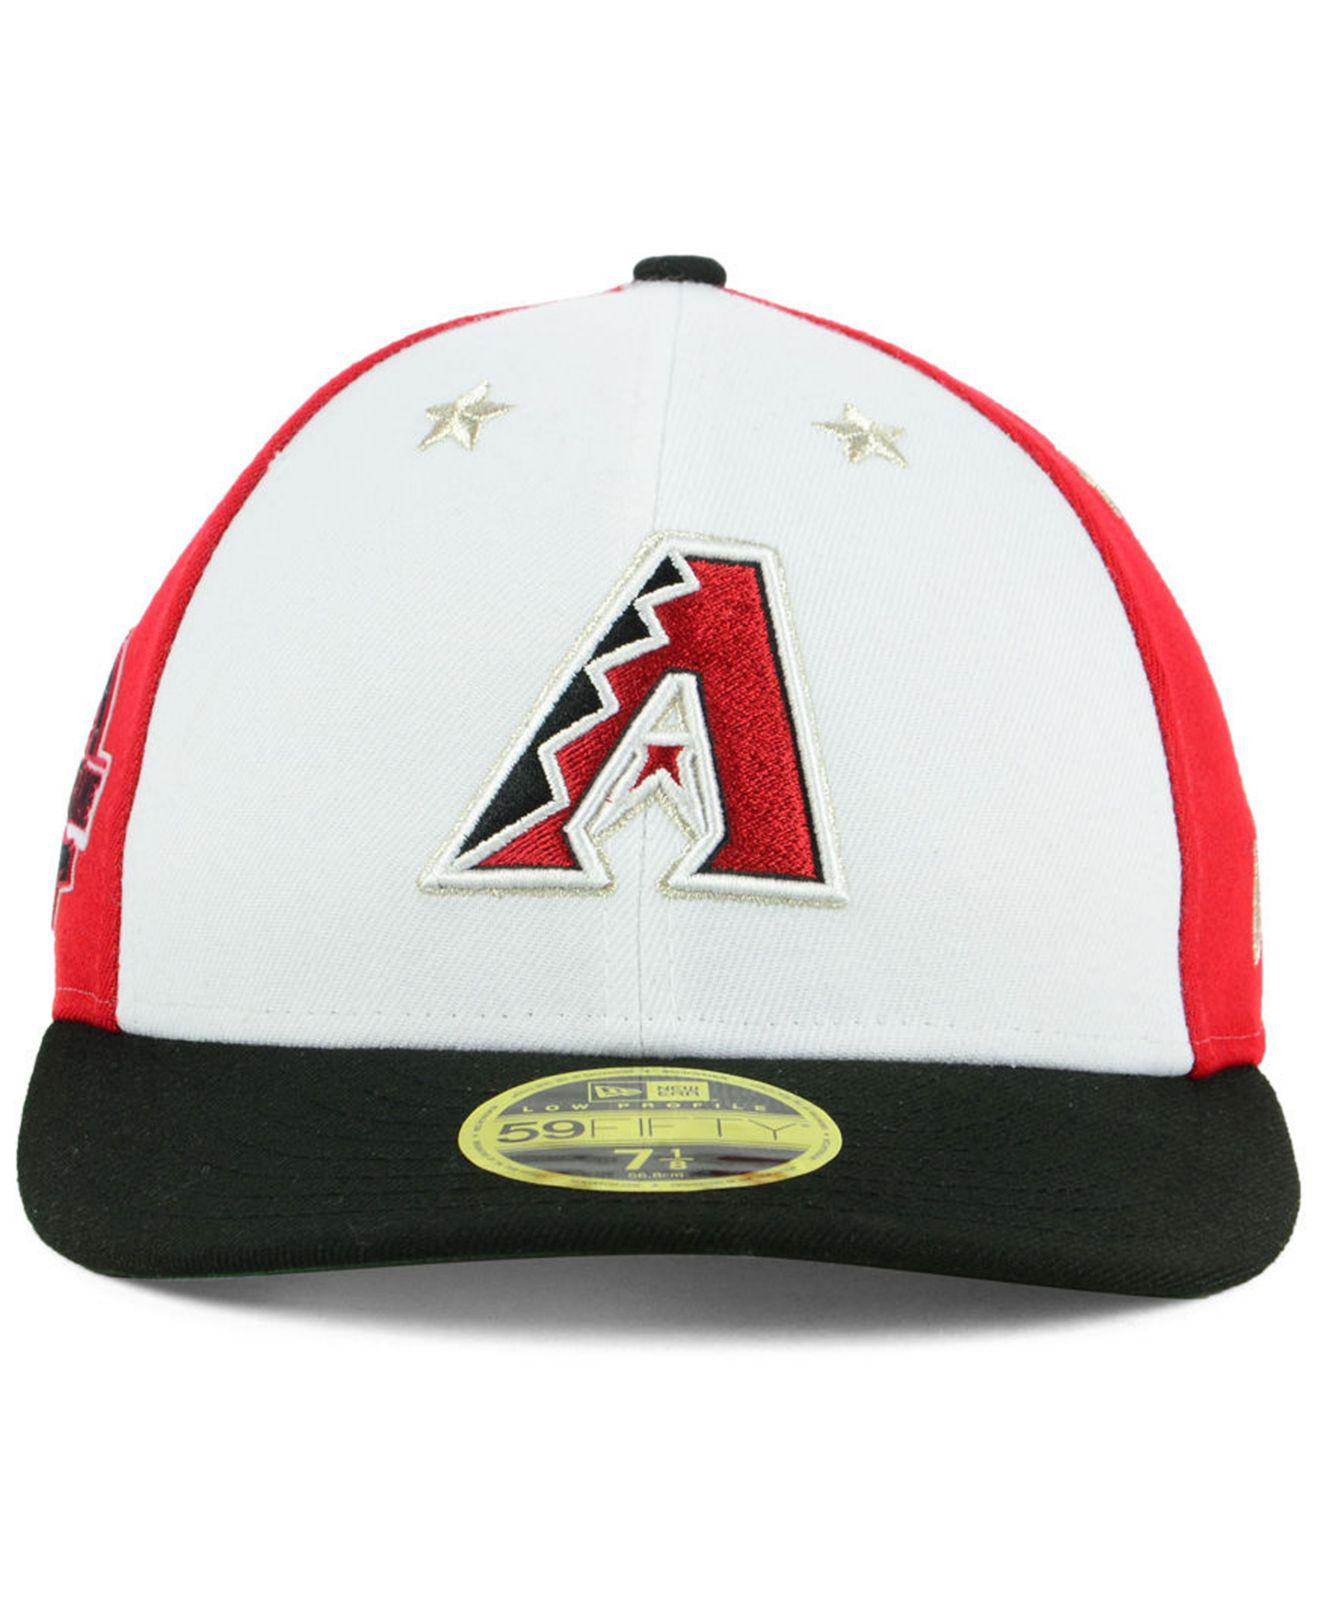 save off 9d676 7b365 ... new style lyst ktz arizona diamondbacks all star game patch low profile 59fifty  fitted cap 2018